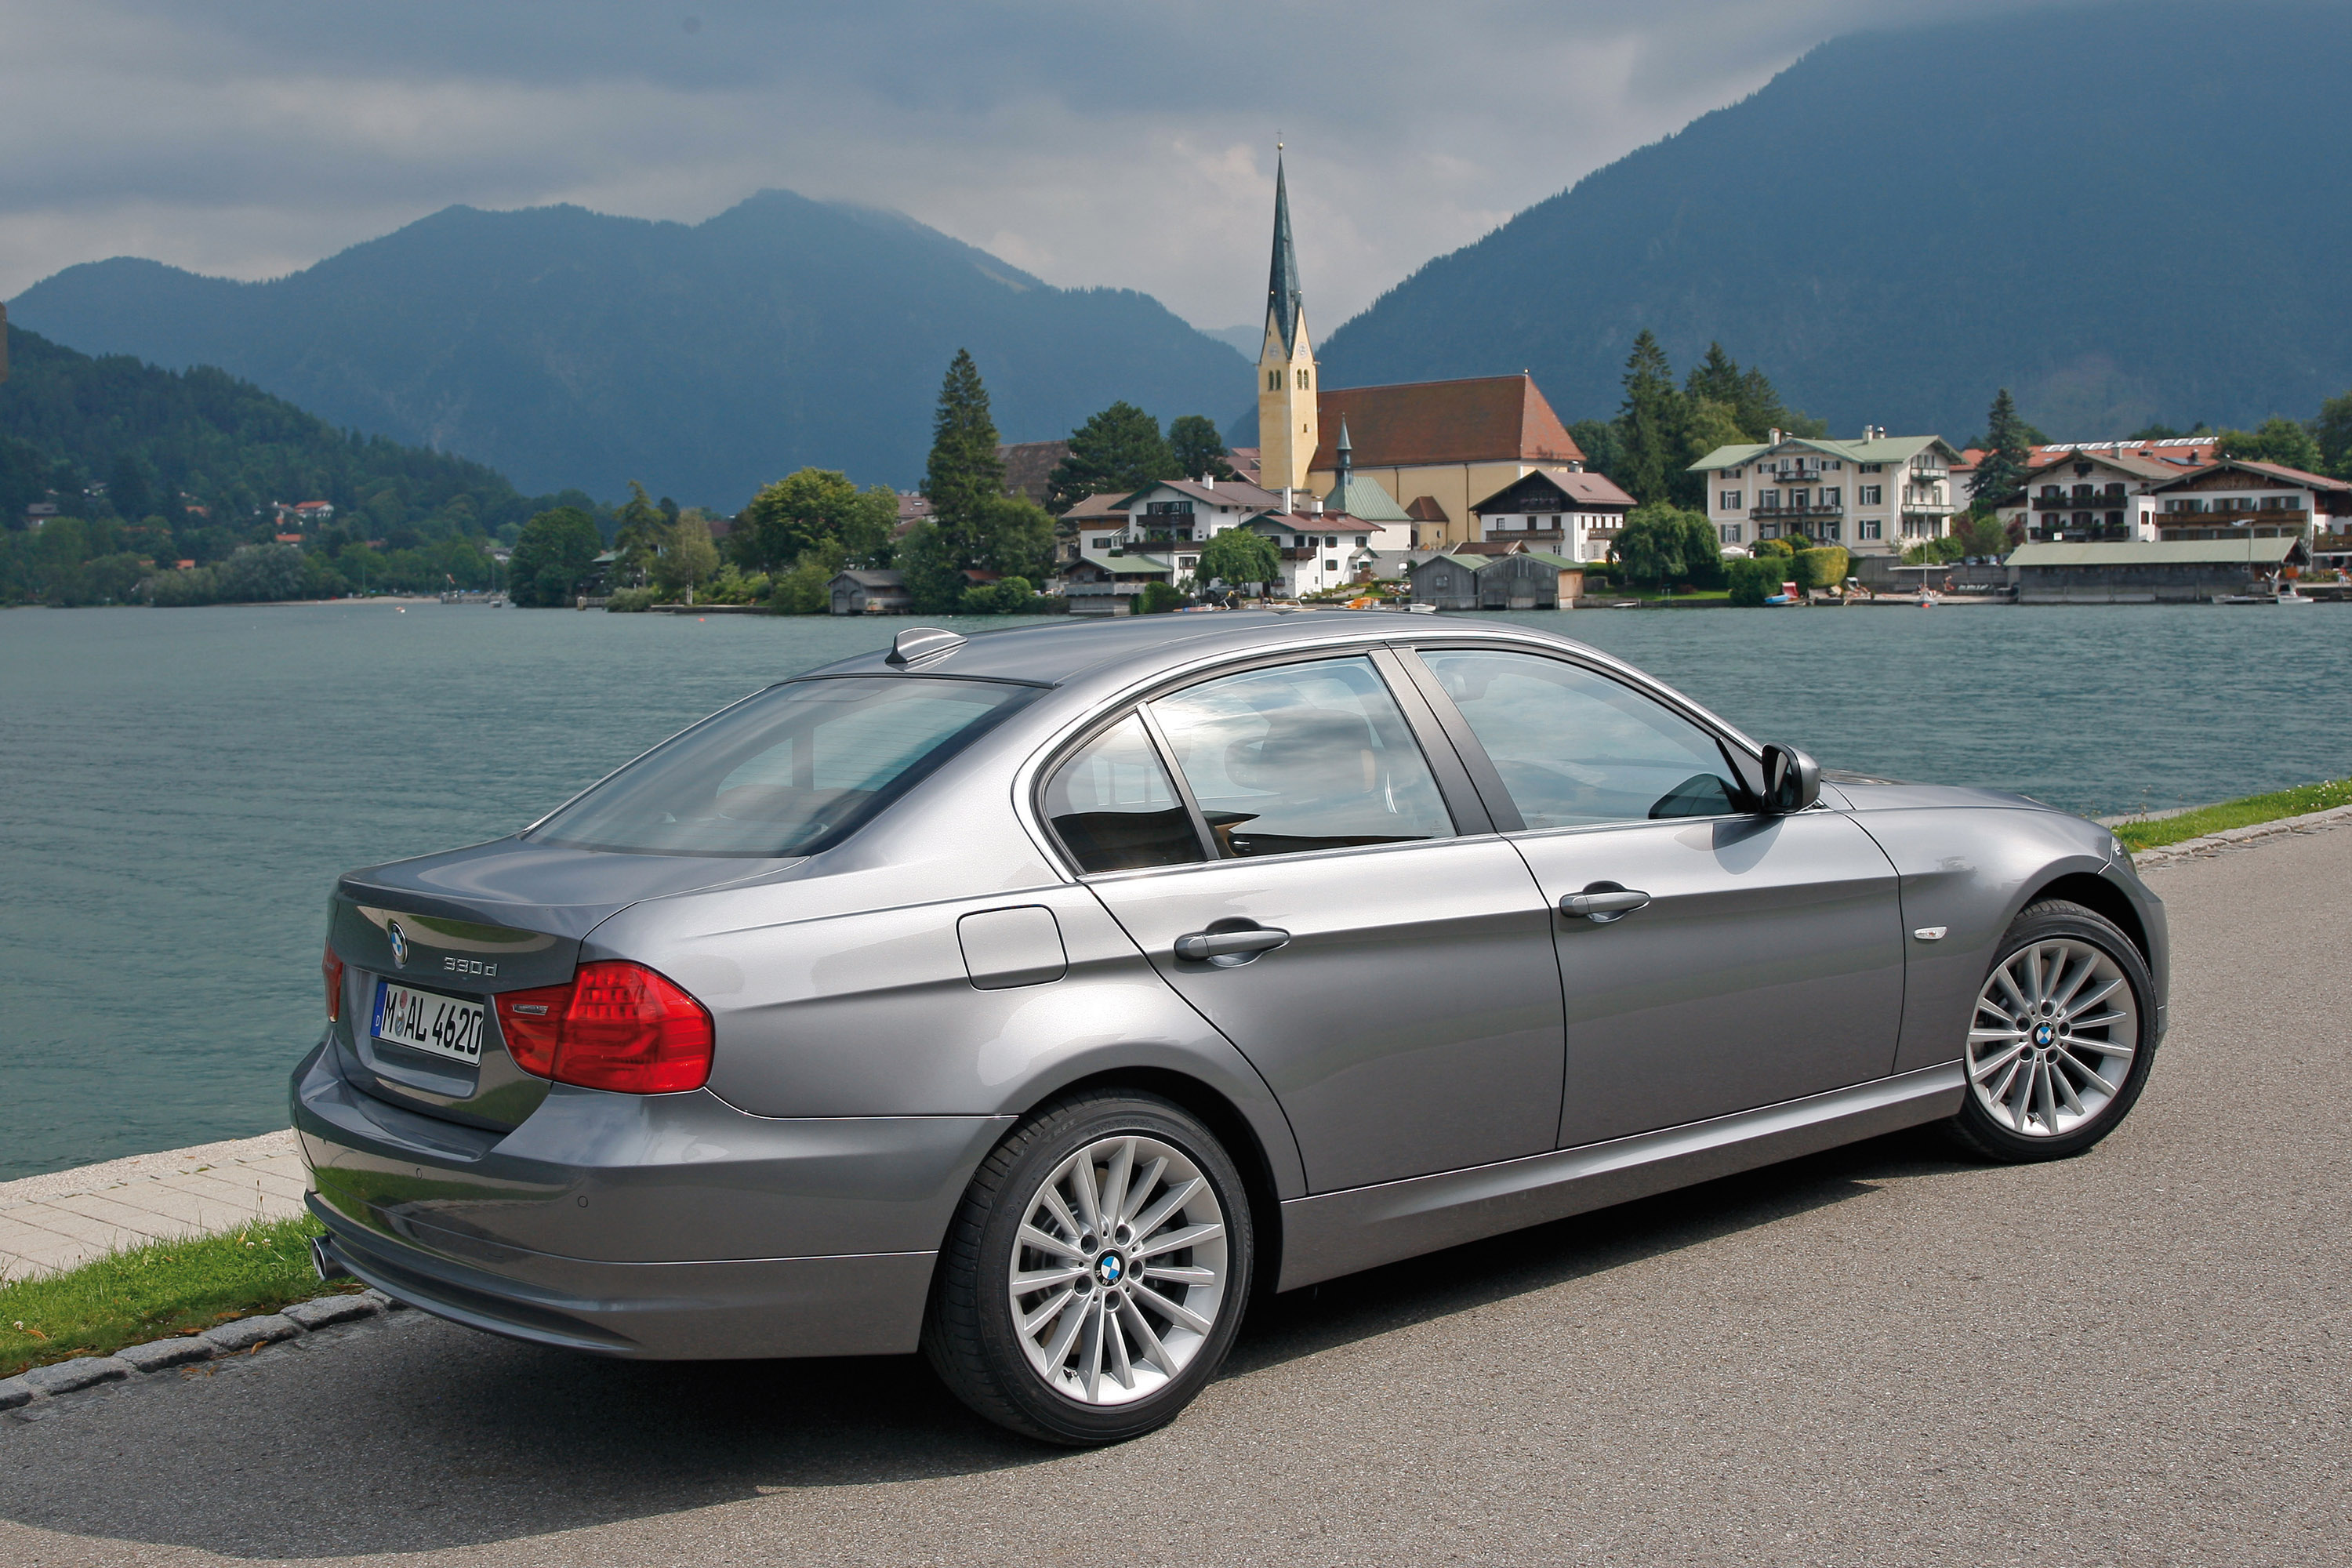 Wetterauer bmw 330d vs kicherer mercedes benz c320 cdi 2 for Mercedes benz c 330